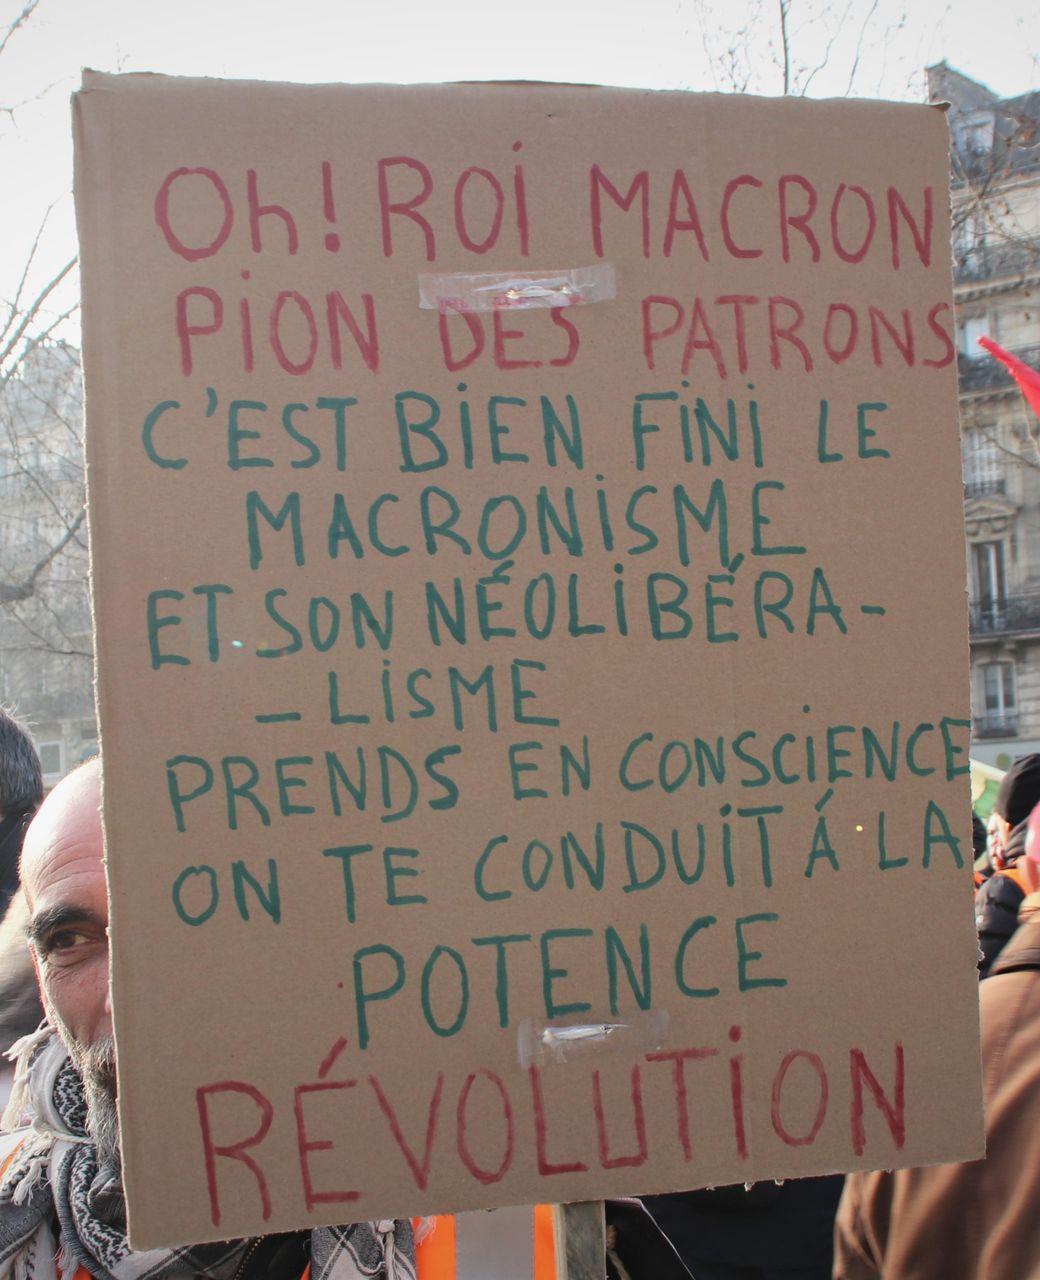 Oh King Macron, tool of the bosses, Macronism and neoliberalism are over, you must know we are taking you to the scaffold. Revolution, the sign says